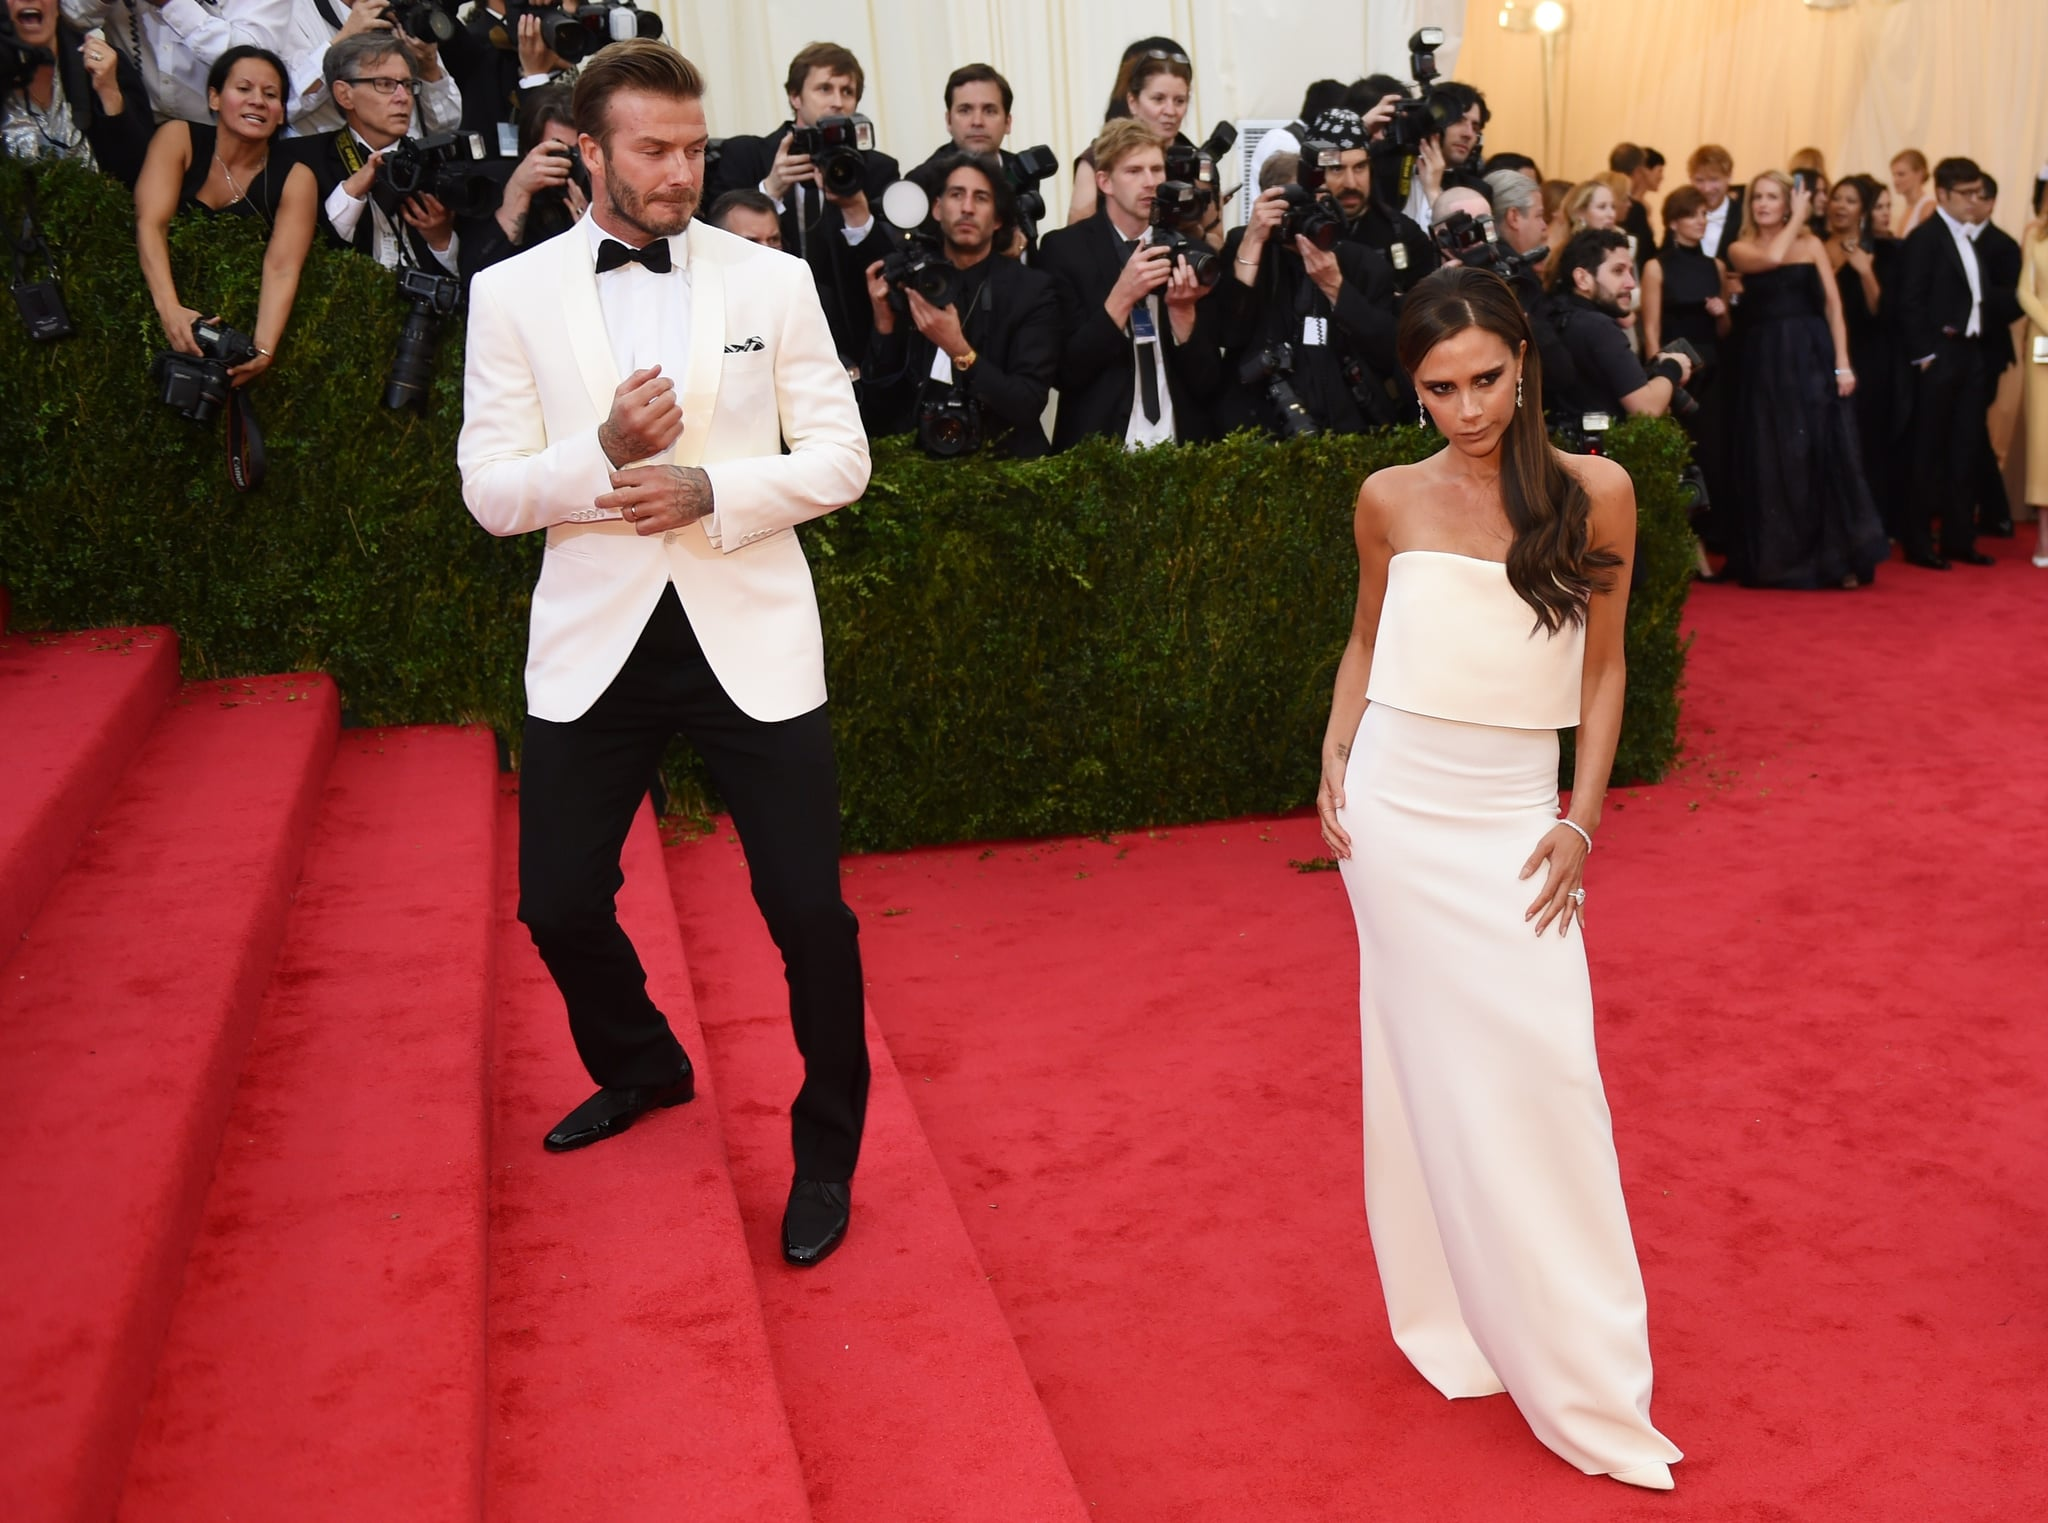 David Beckham waited for Victoria.